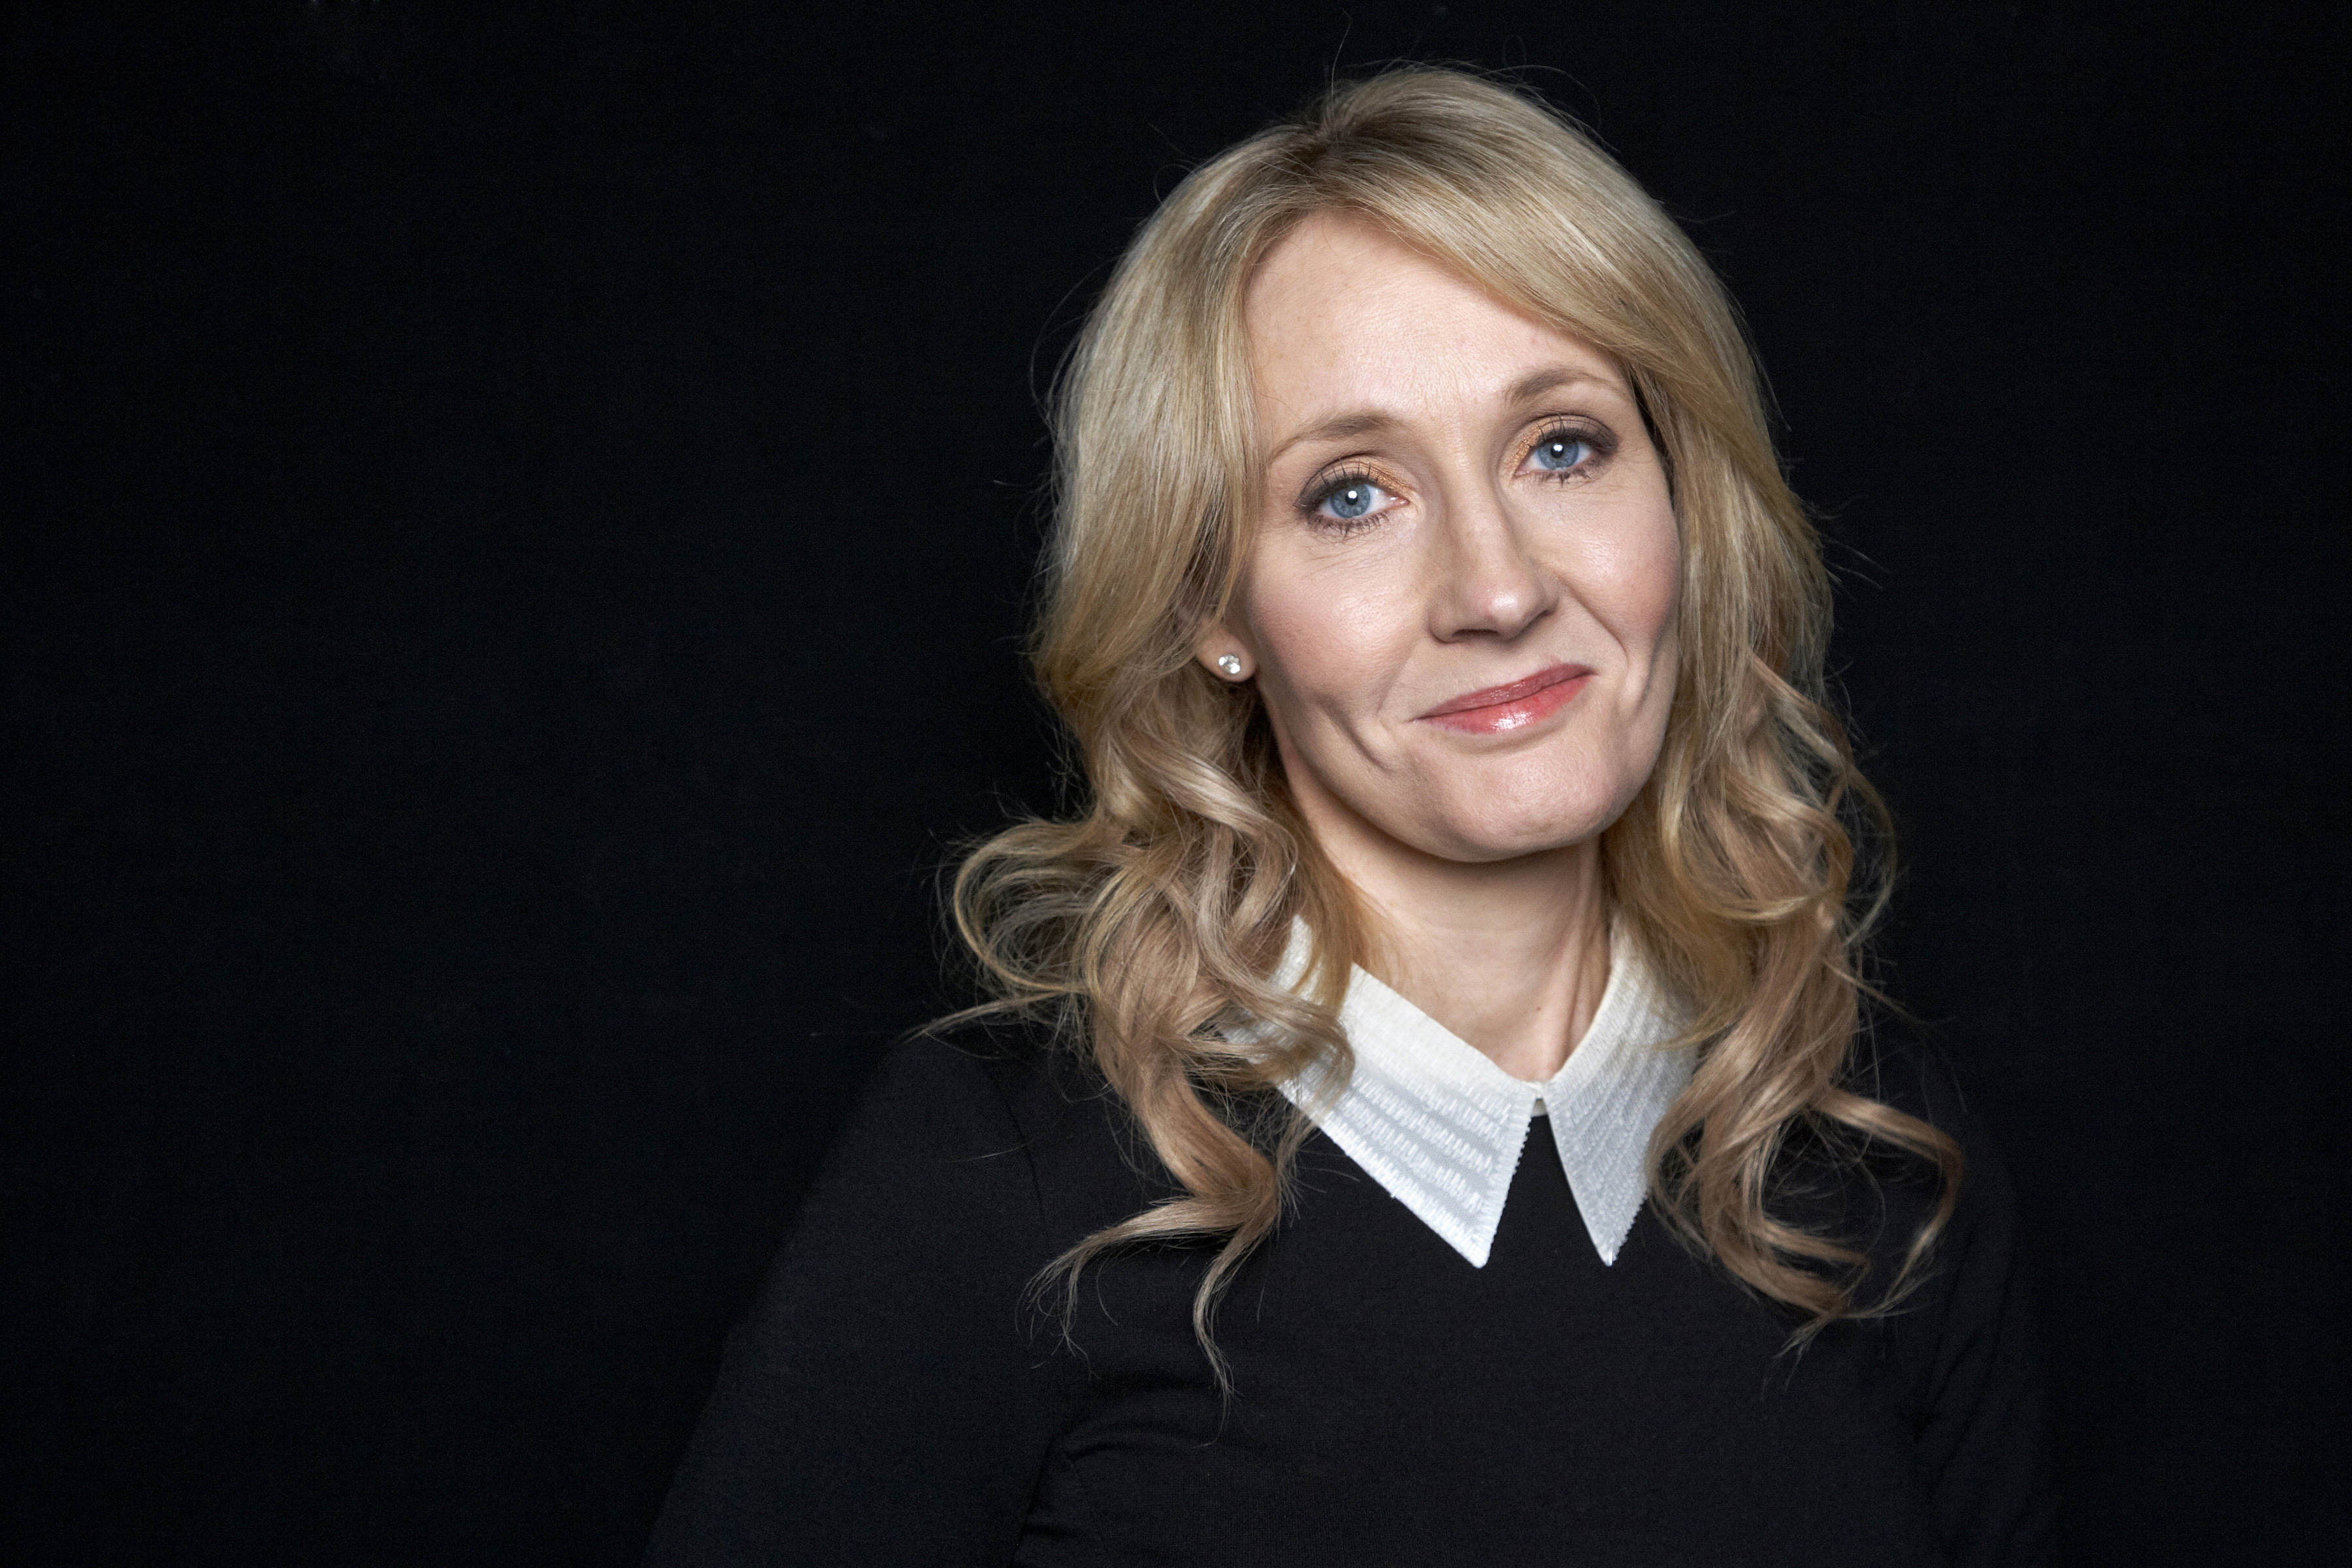 J.K. Rowling Reveals New Wizarding Schools And They Sound Amazing PA 21626007